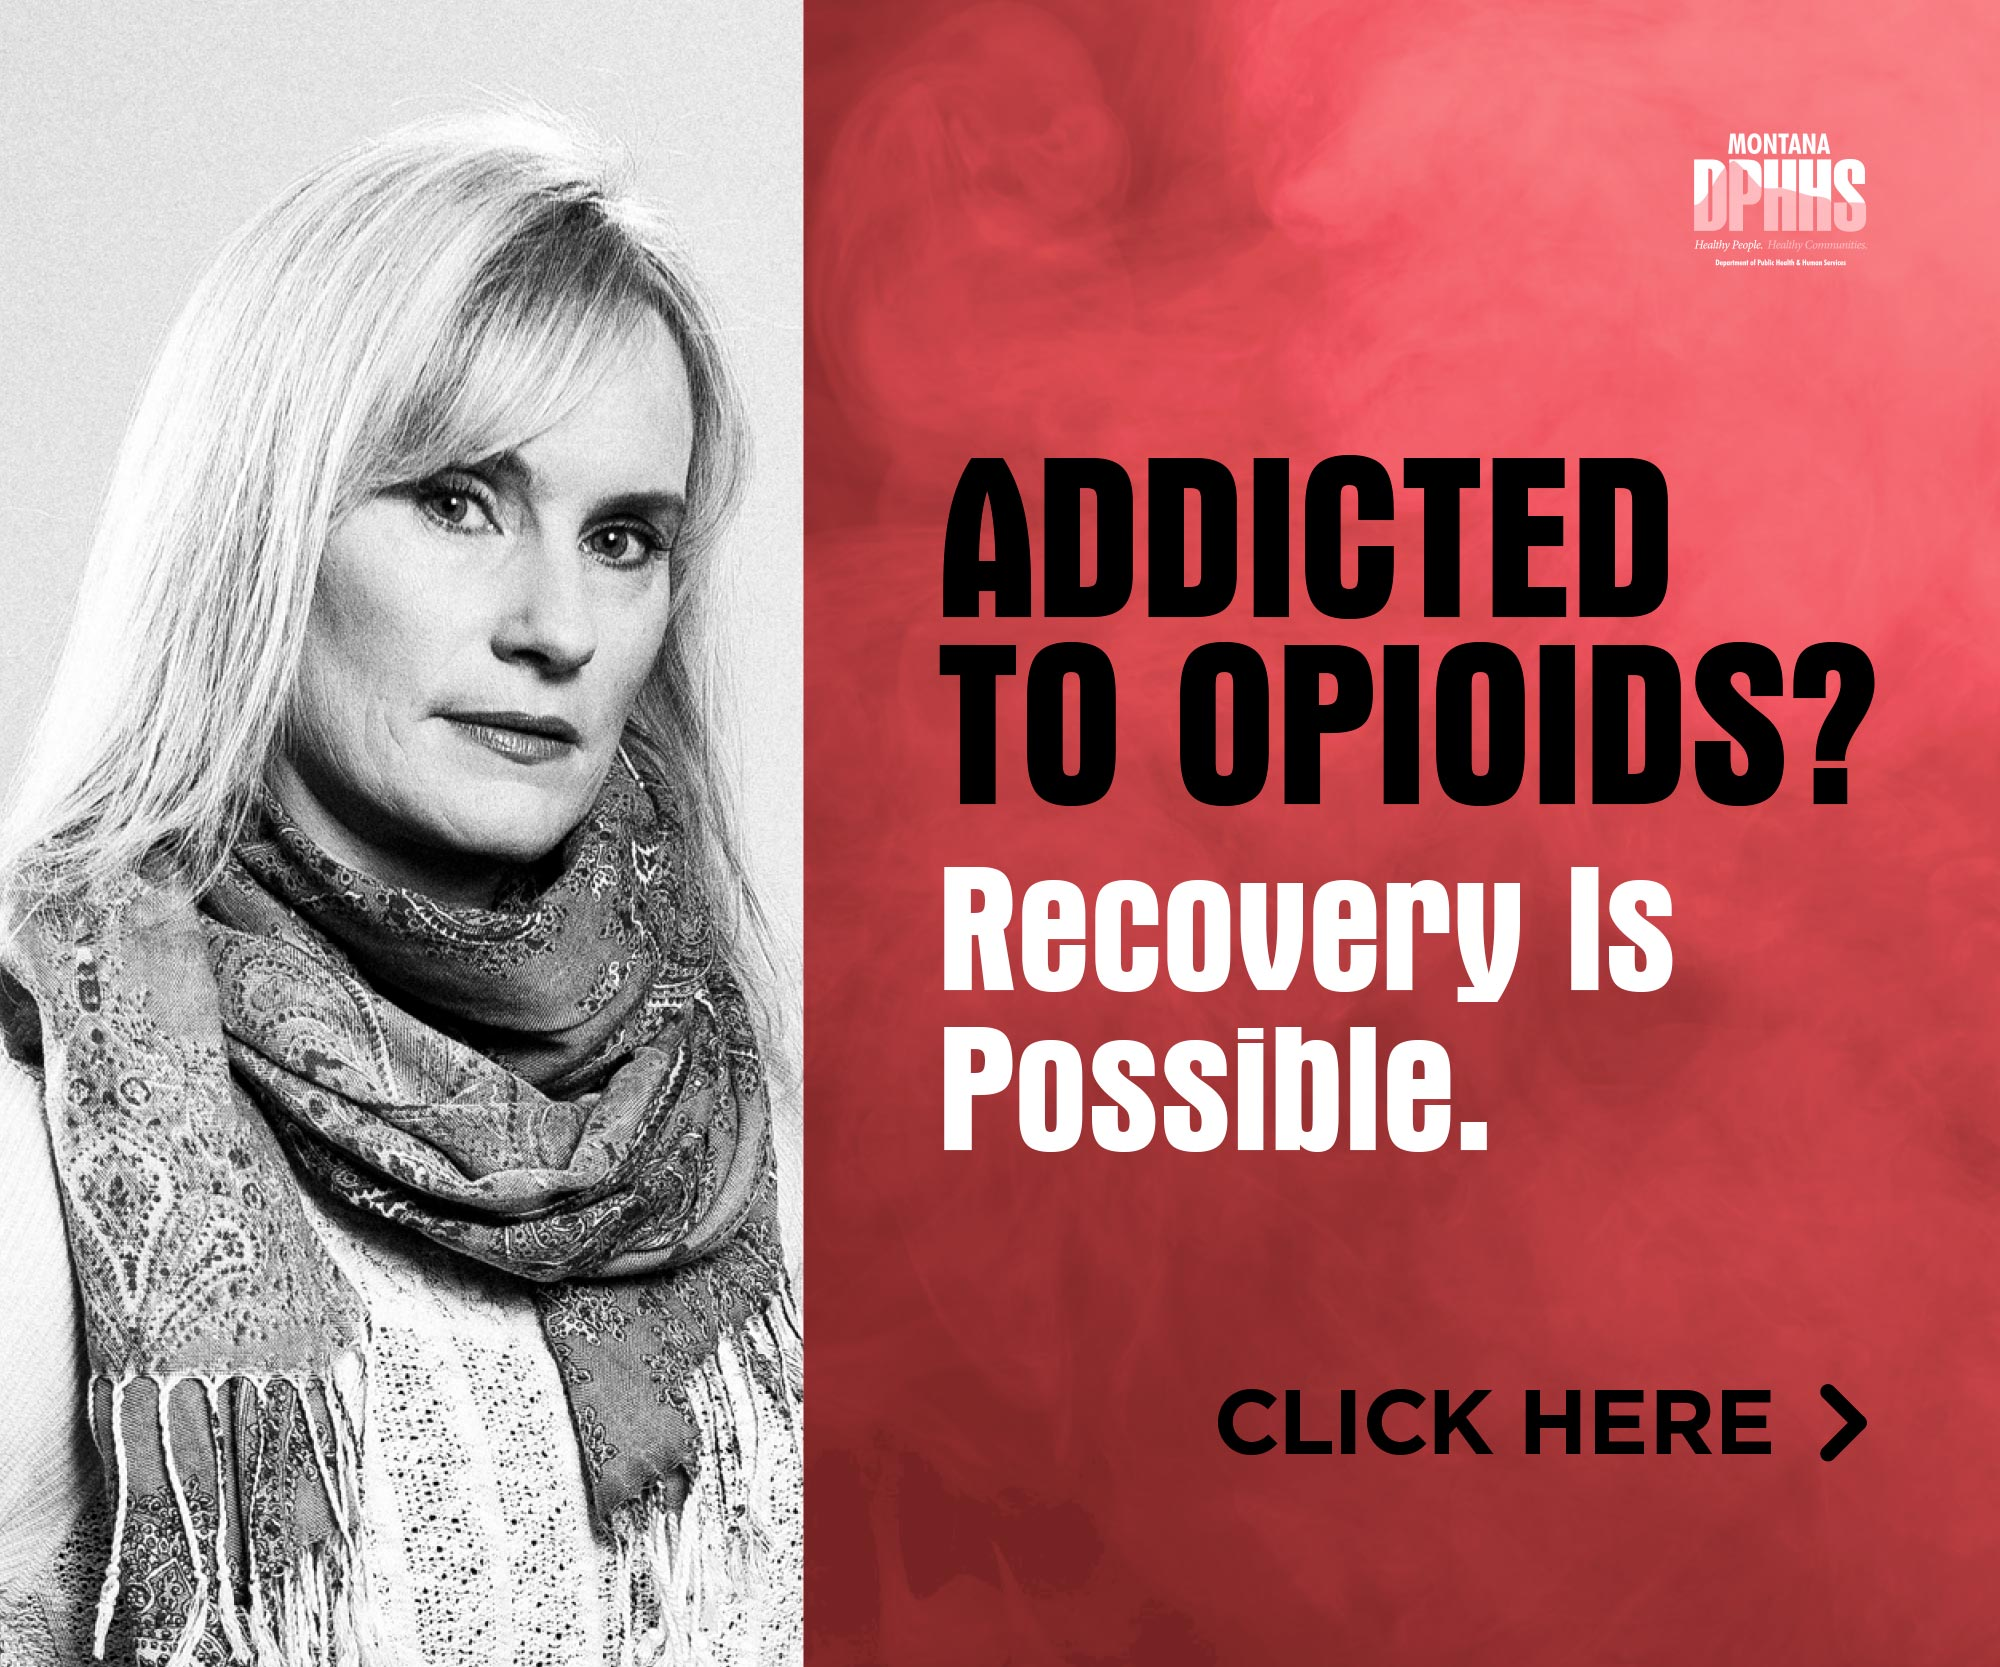 Montana DPHHS, Addicted to opiods campaign digital ad